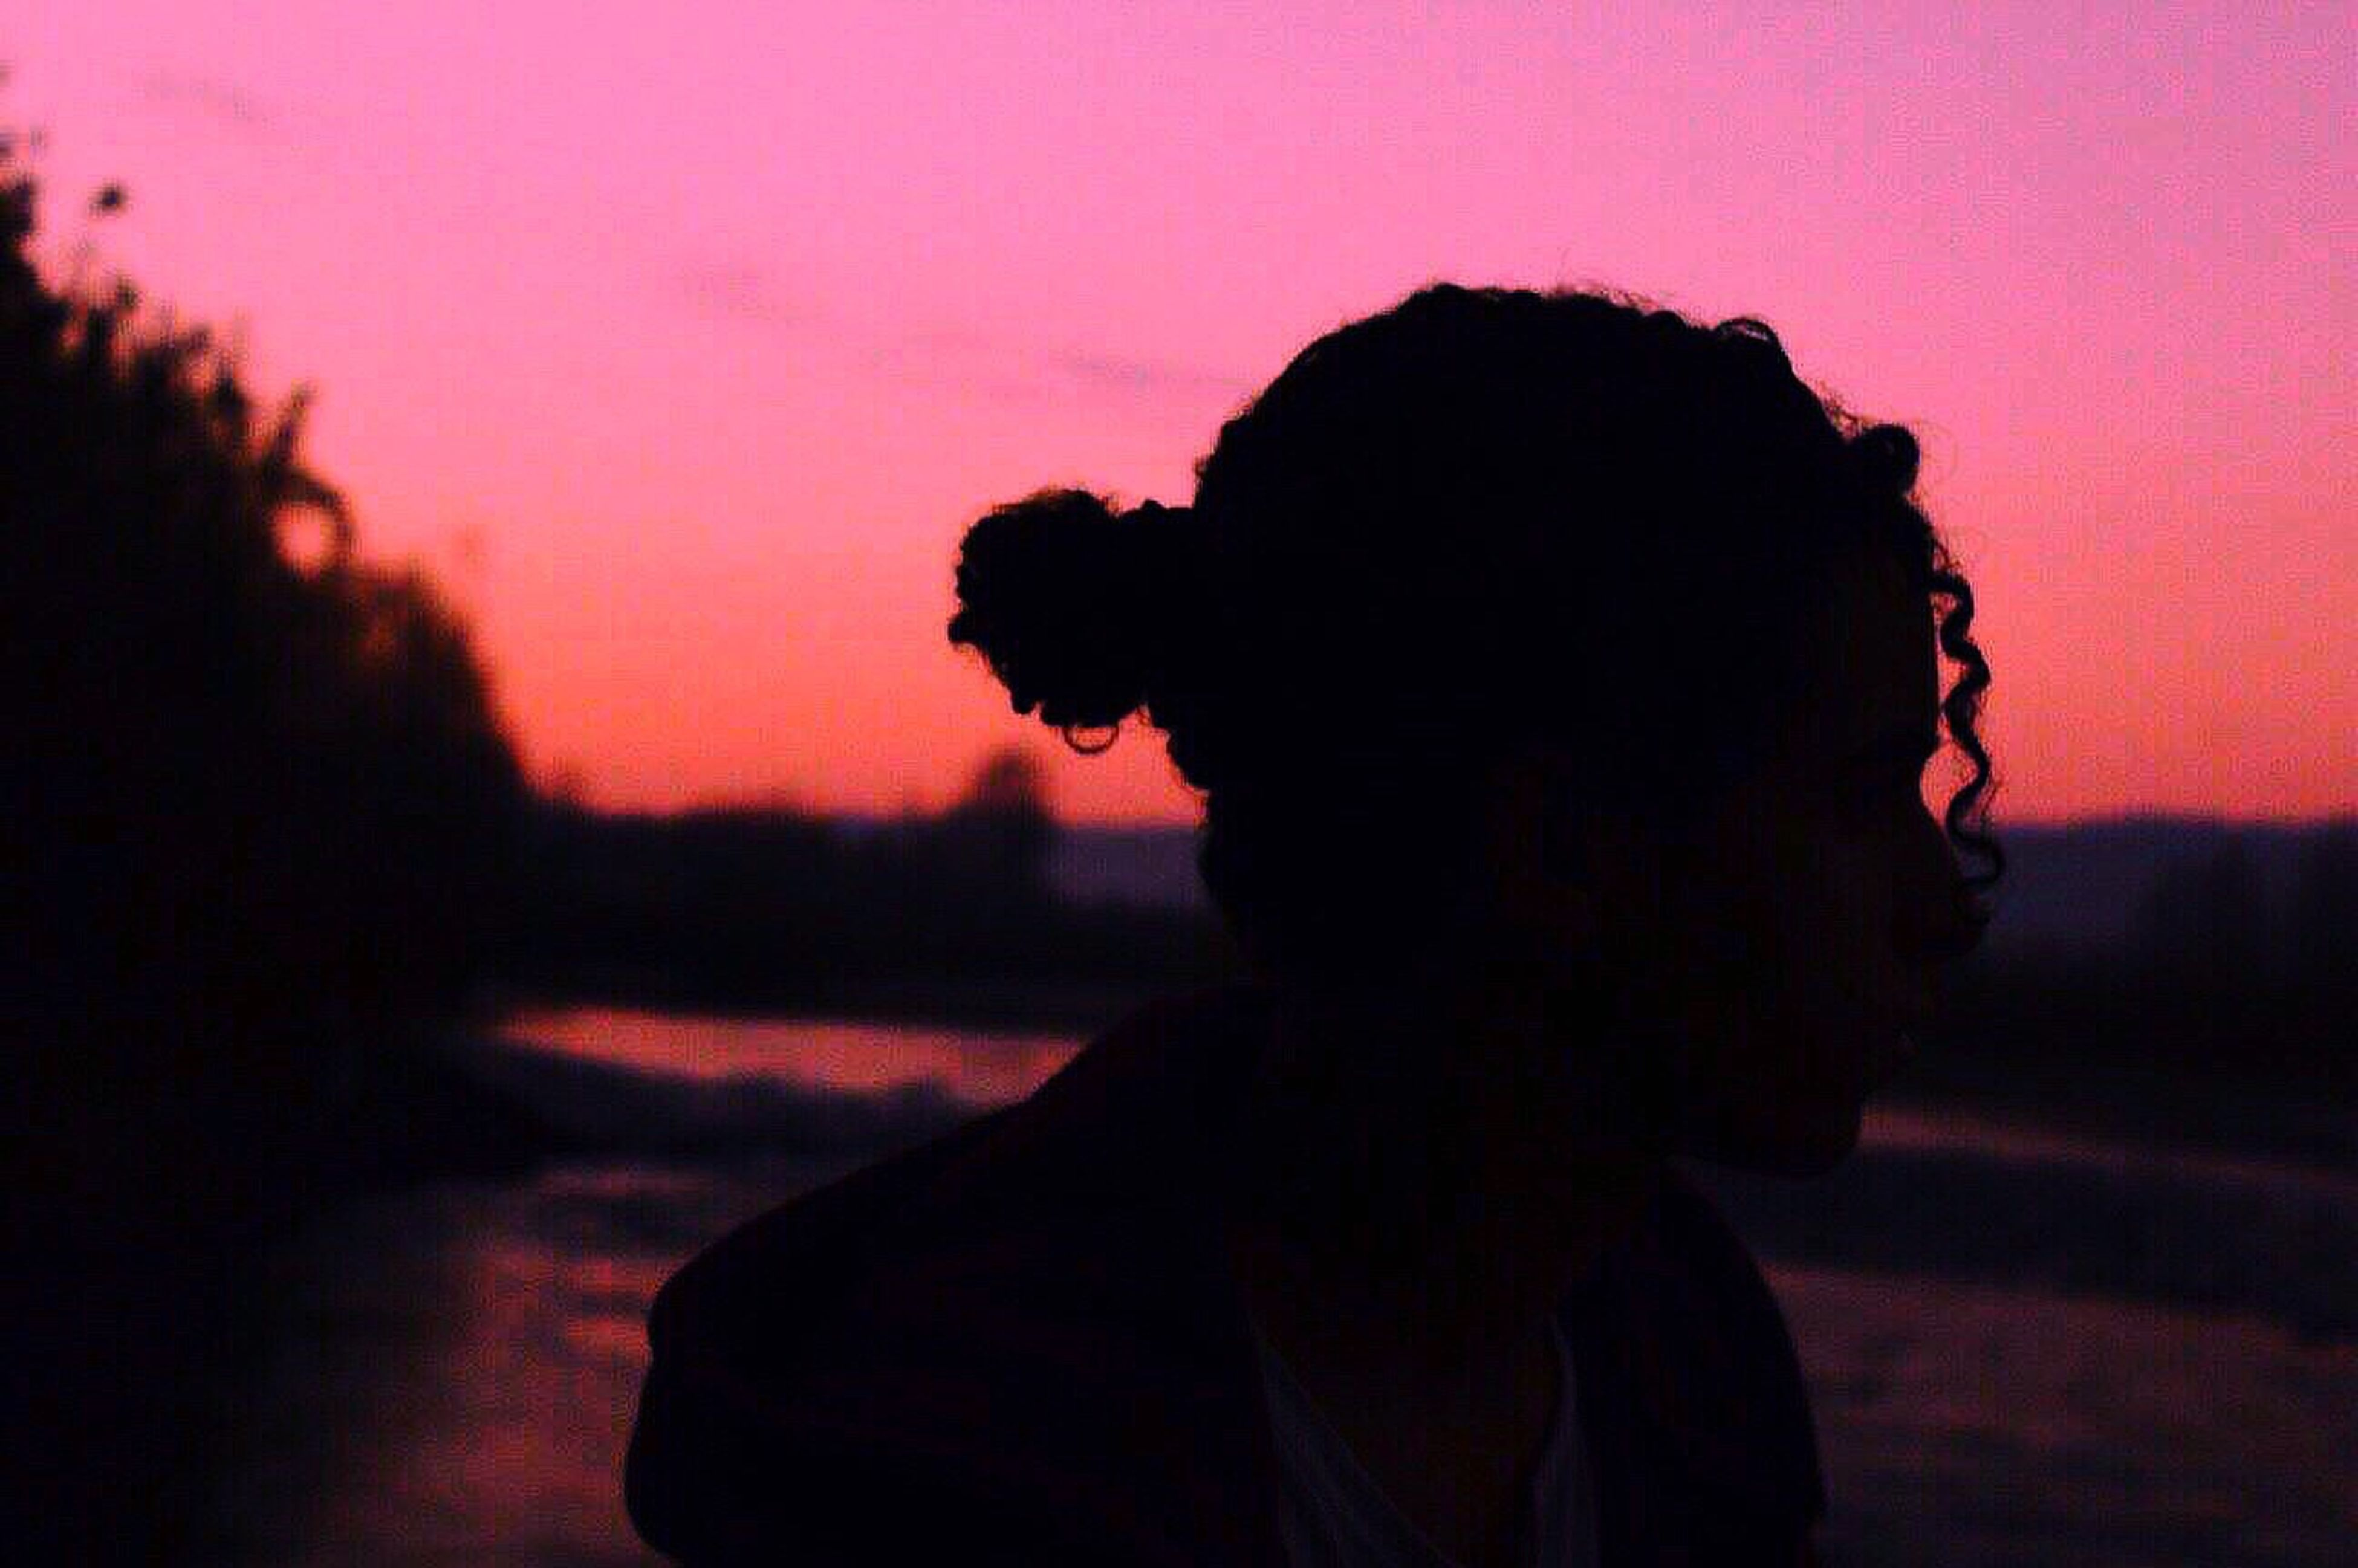 silhouette, sunset, only men, men, one person, adult, one man only, depression - sadness, headshot, people, adults only, close-up, sky, outdoors, day